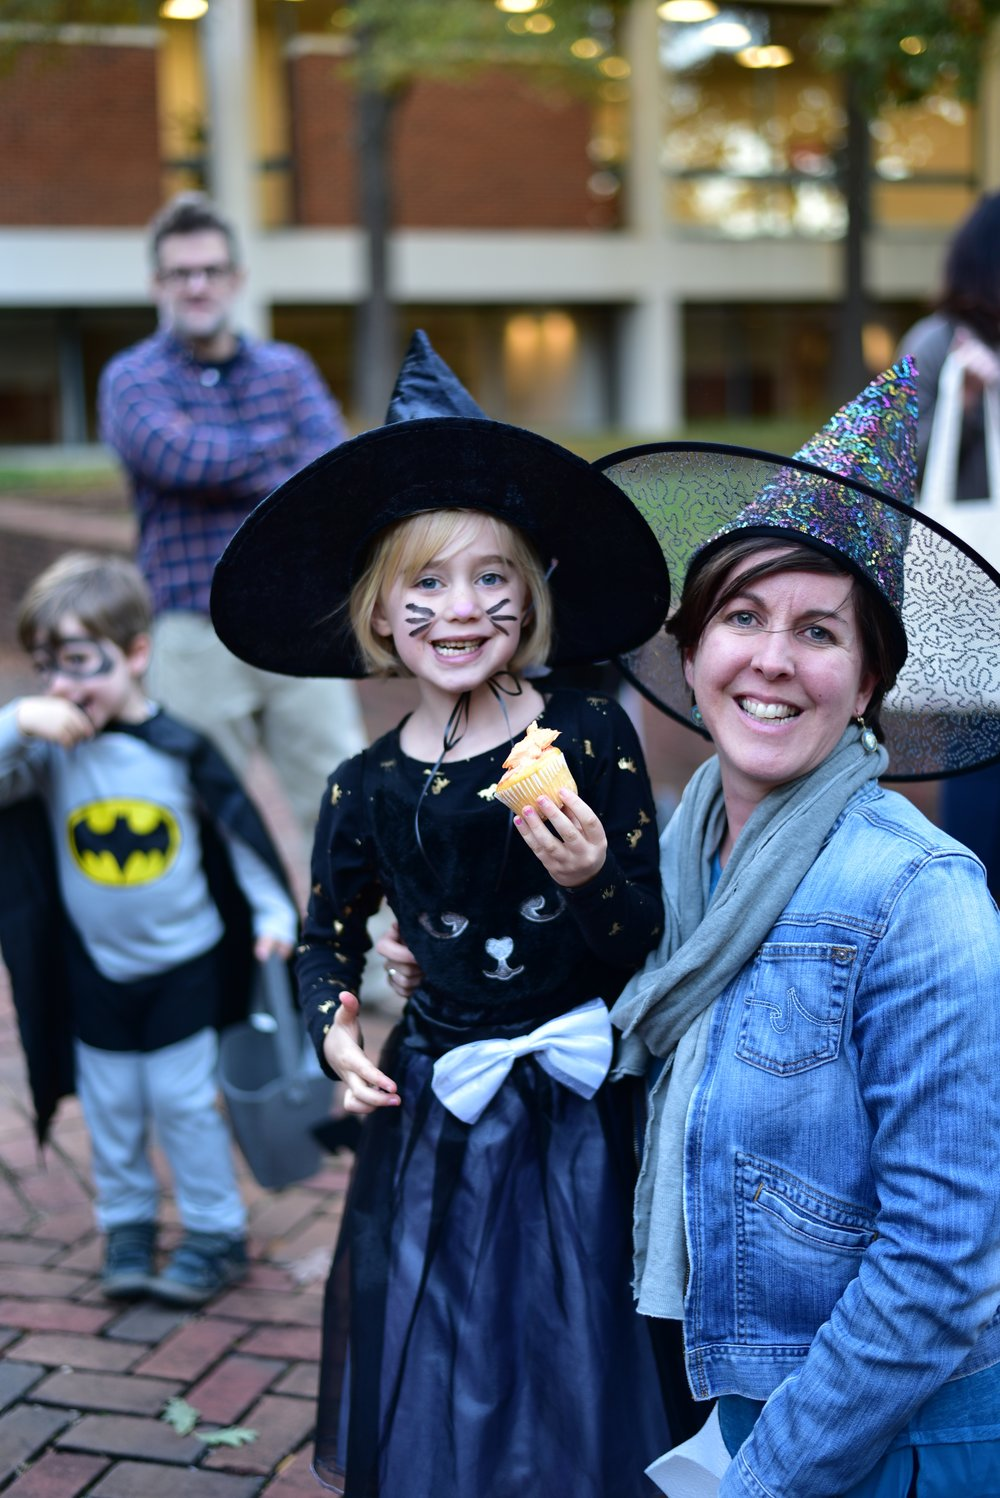 Olivia and her mother, Kate Duvall, attempt to rehab the scary image of witches. Photo courtesy of Eric Hall.